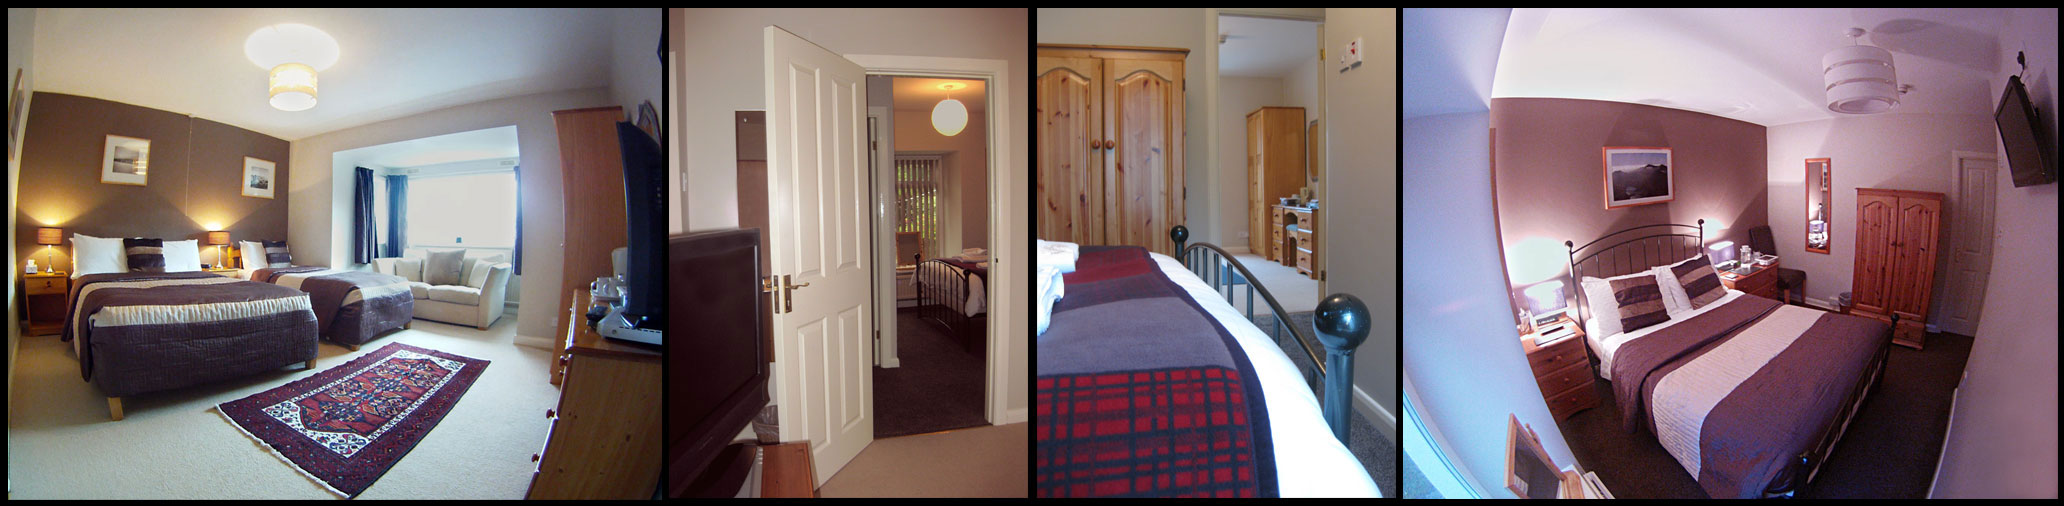 Four images showing how rooms 5 and 6 open up to make a great family suite that sleeps five people.